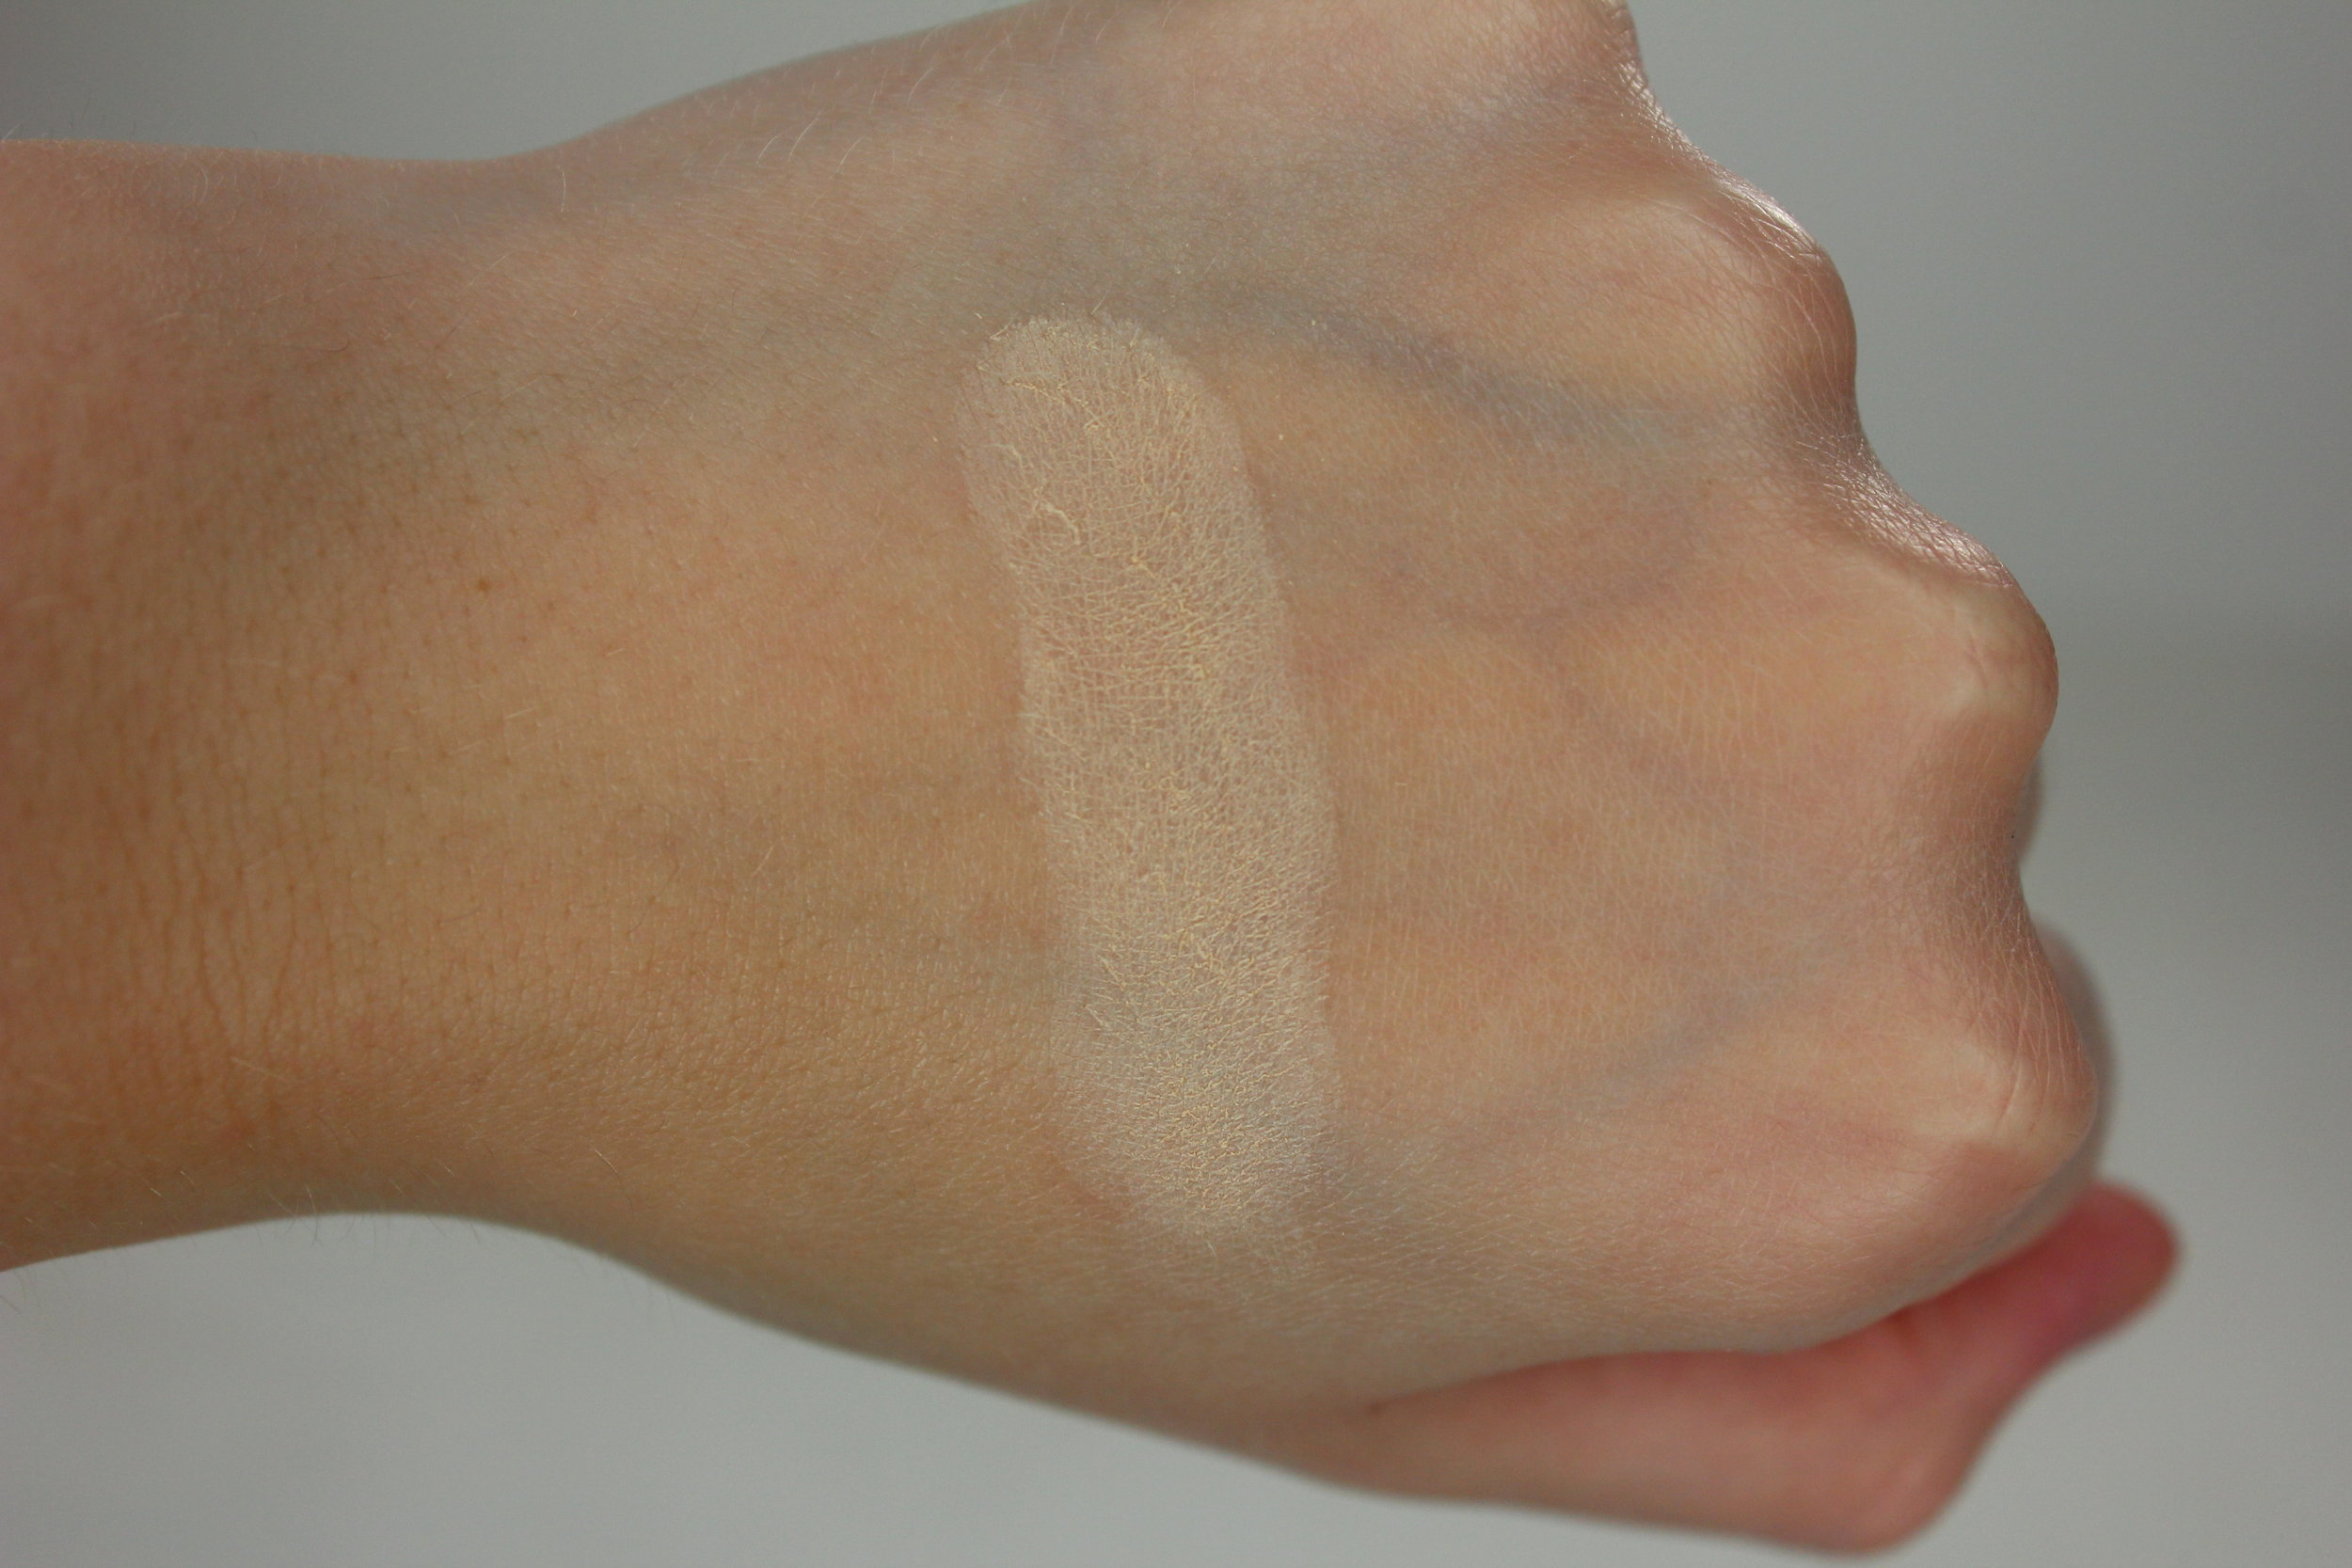 Lorac Pro Contour Palette - Beige Highlight Swatch 2